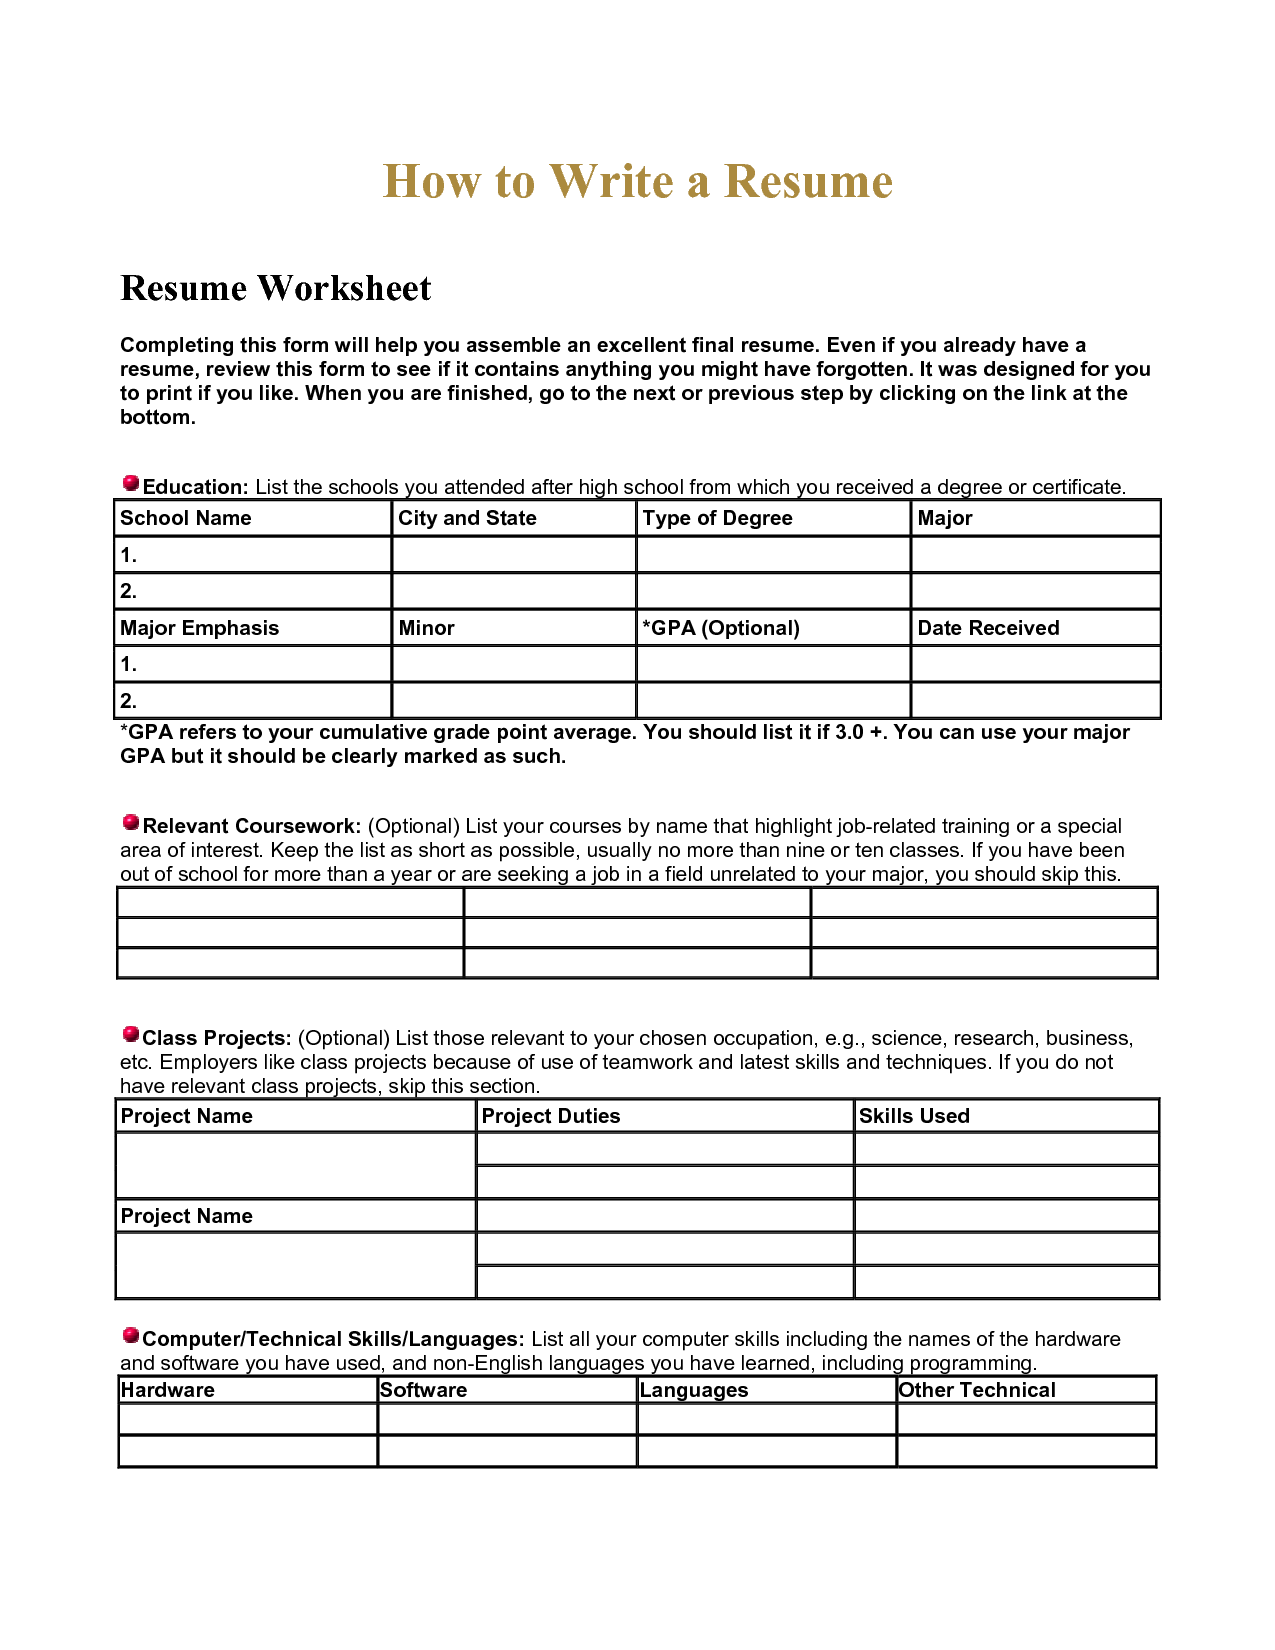 worksheet Resume Worksheets high school resume worksheet using your academic experiences to build a resume